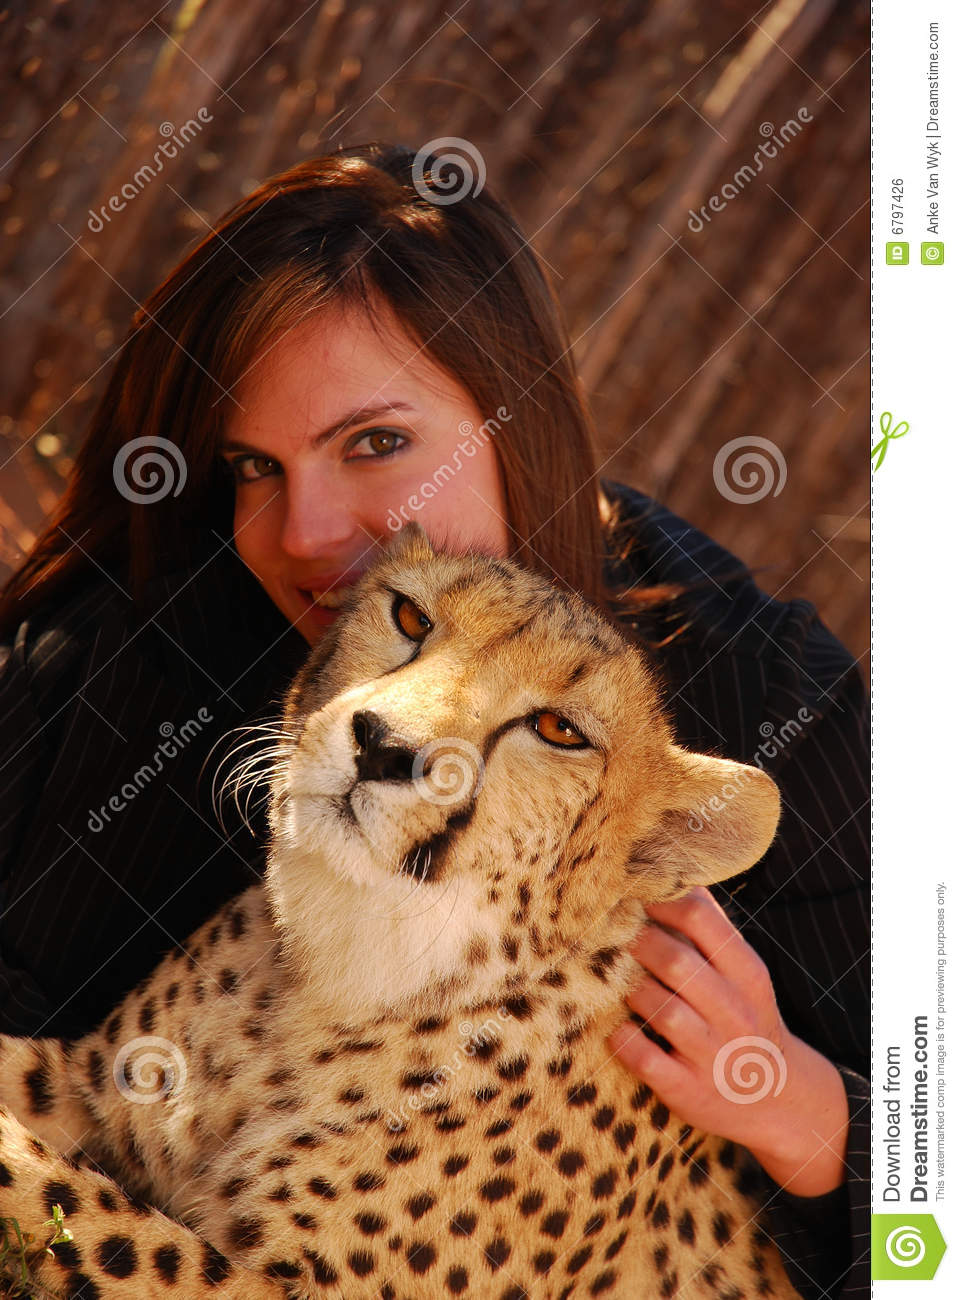 Person With Cat Head >> Cheetah Pet Royalty Free Stock Image - Image: 6797426